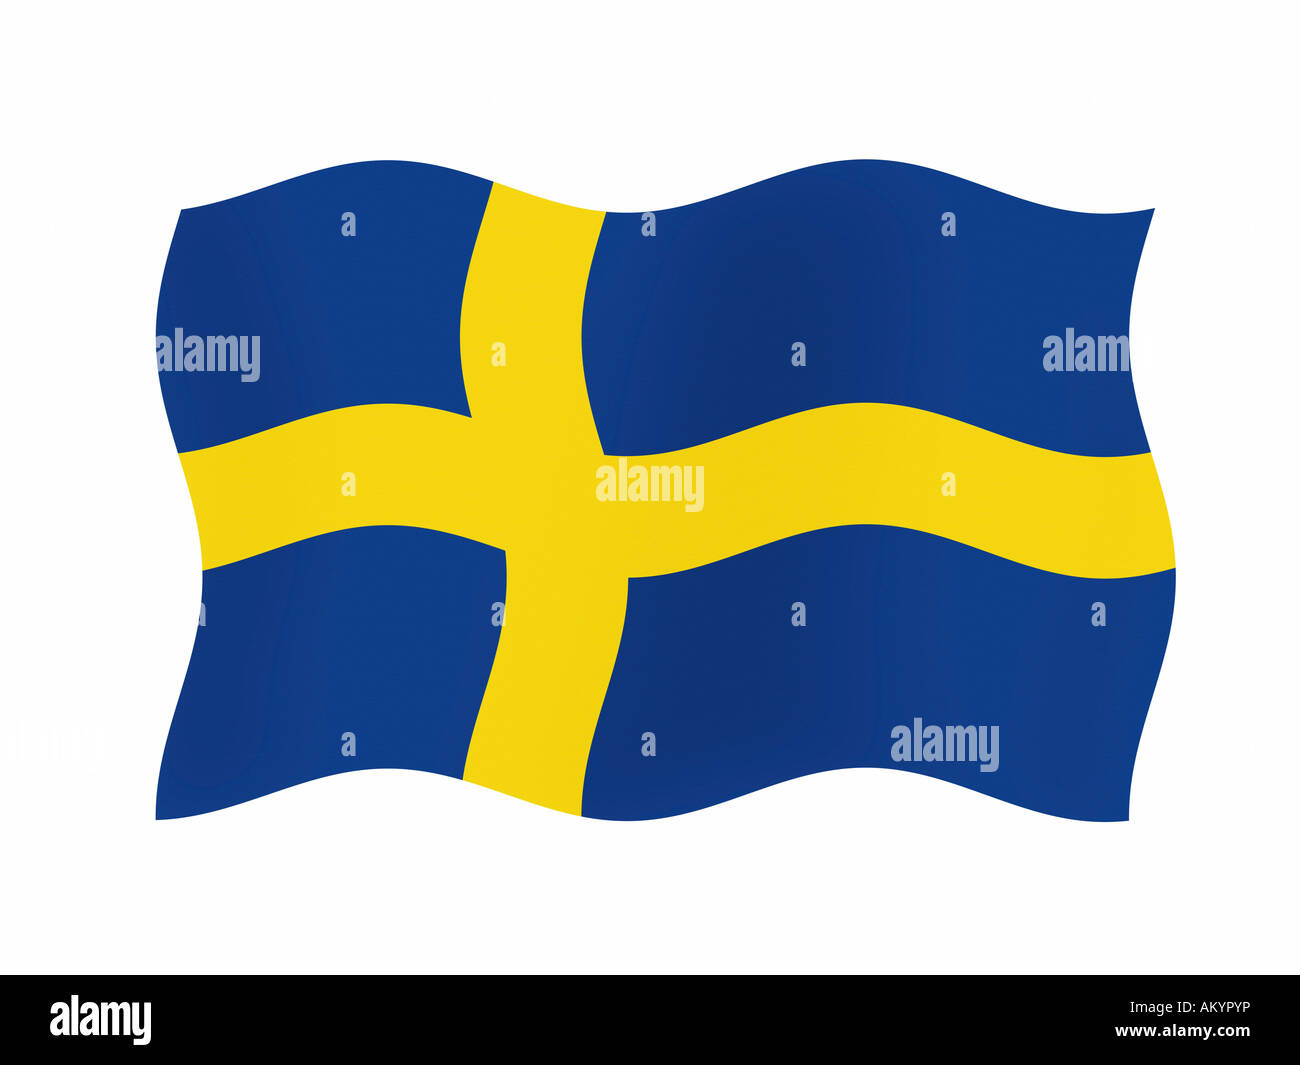 The flag of Sweden - graphic - Stock Image